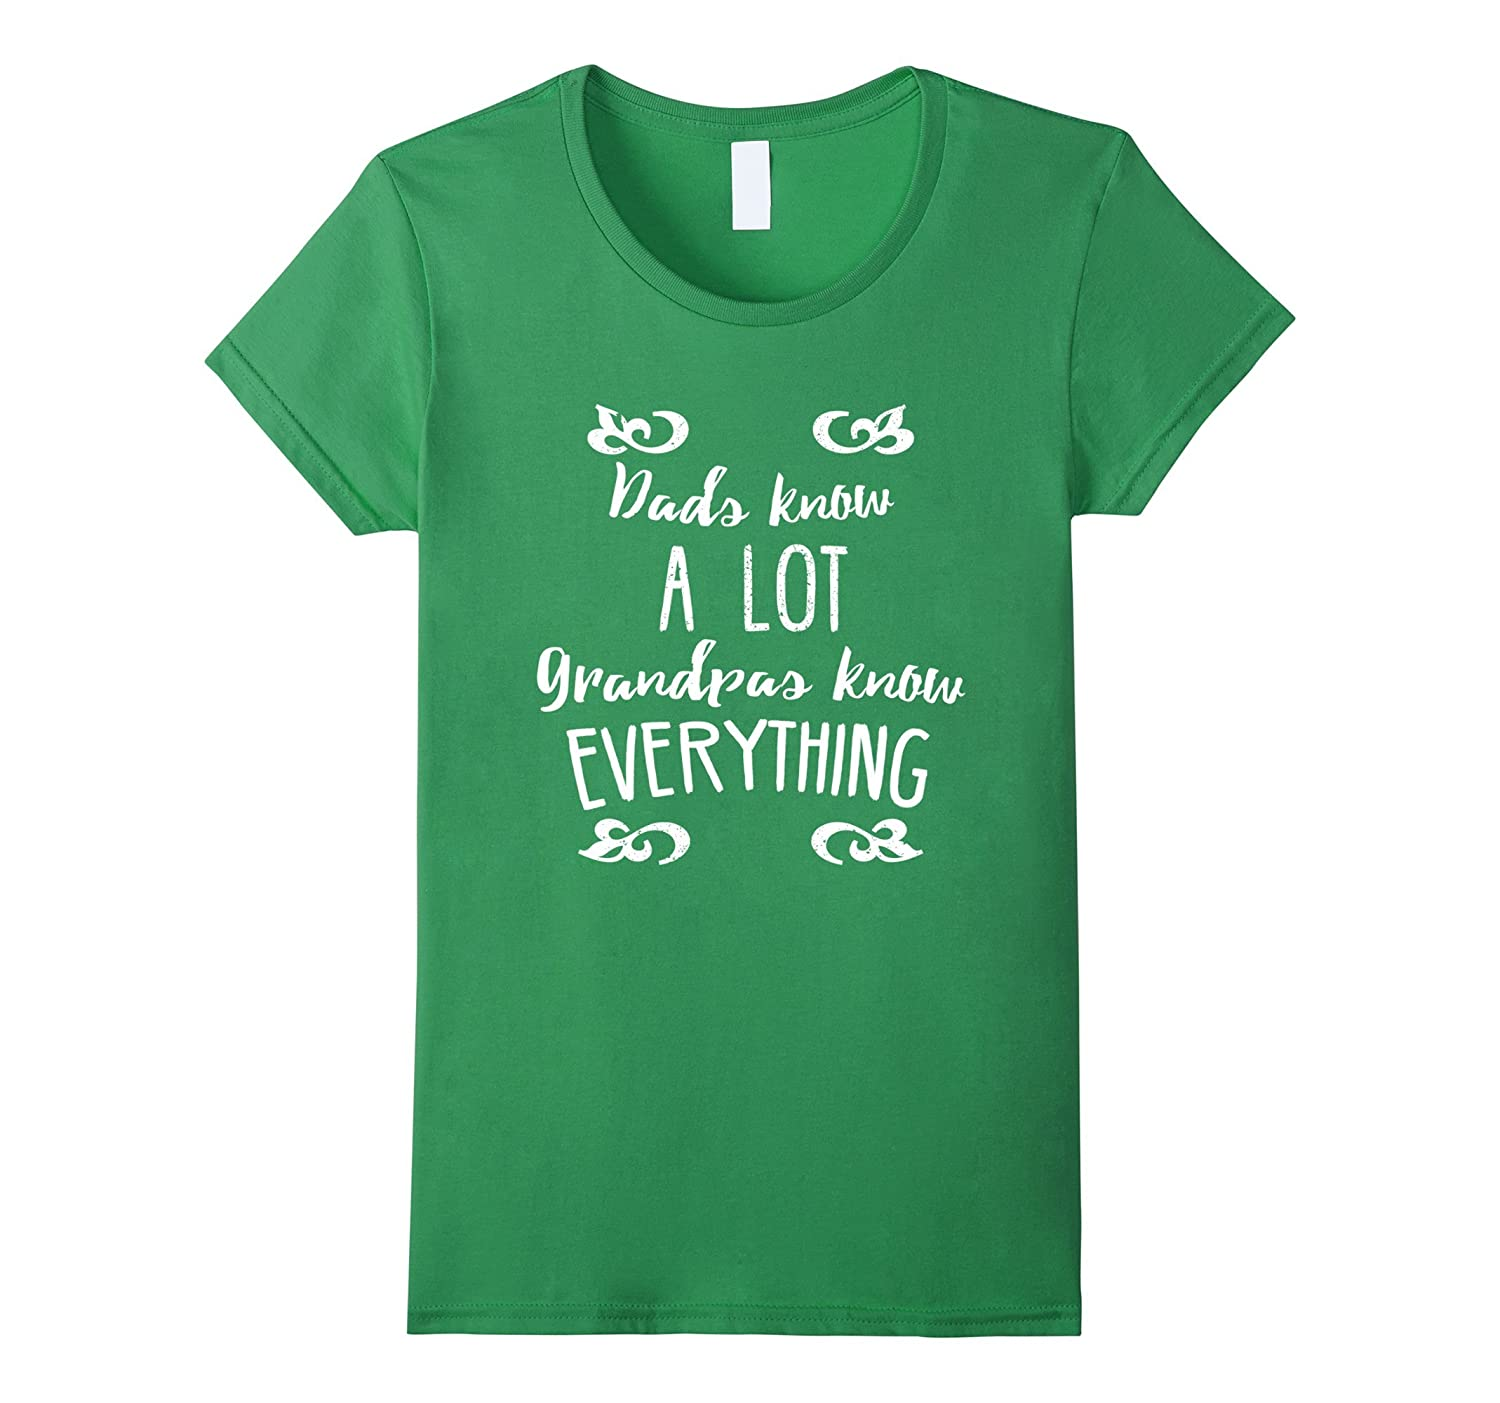 Dads Know A Lot Grandpas Know Everything T-Shirt Funny